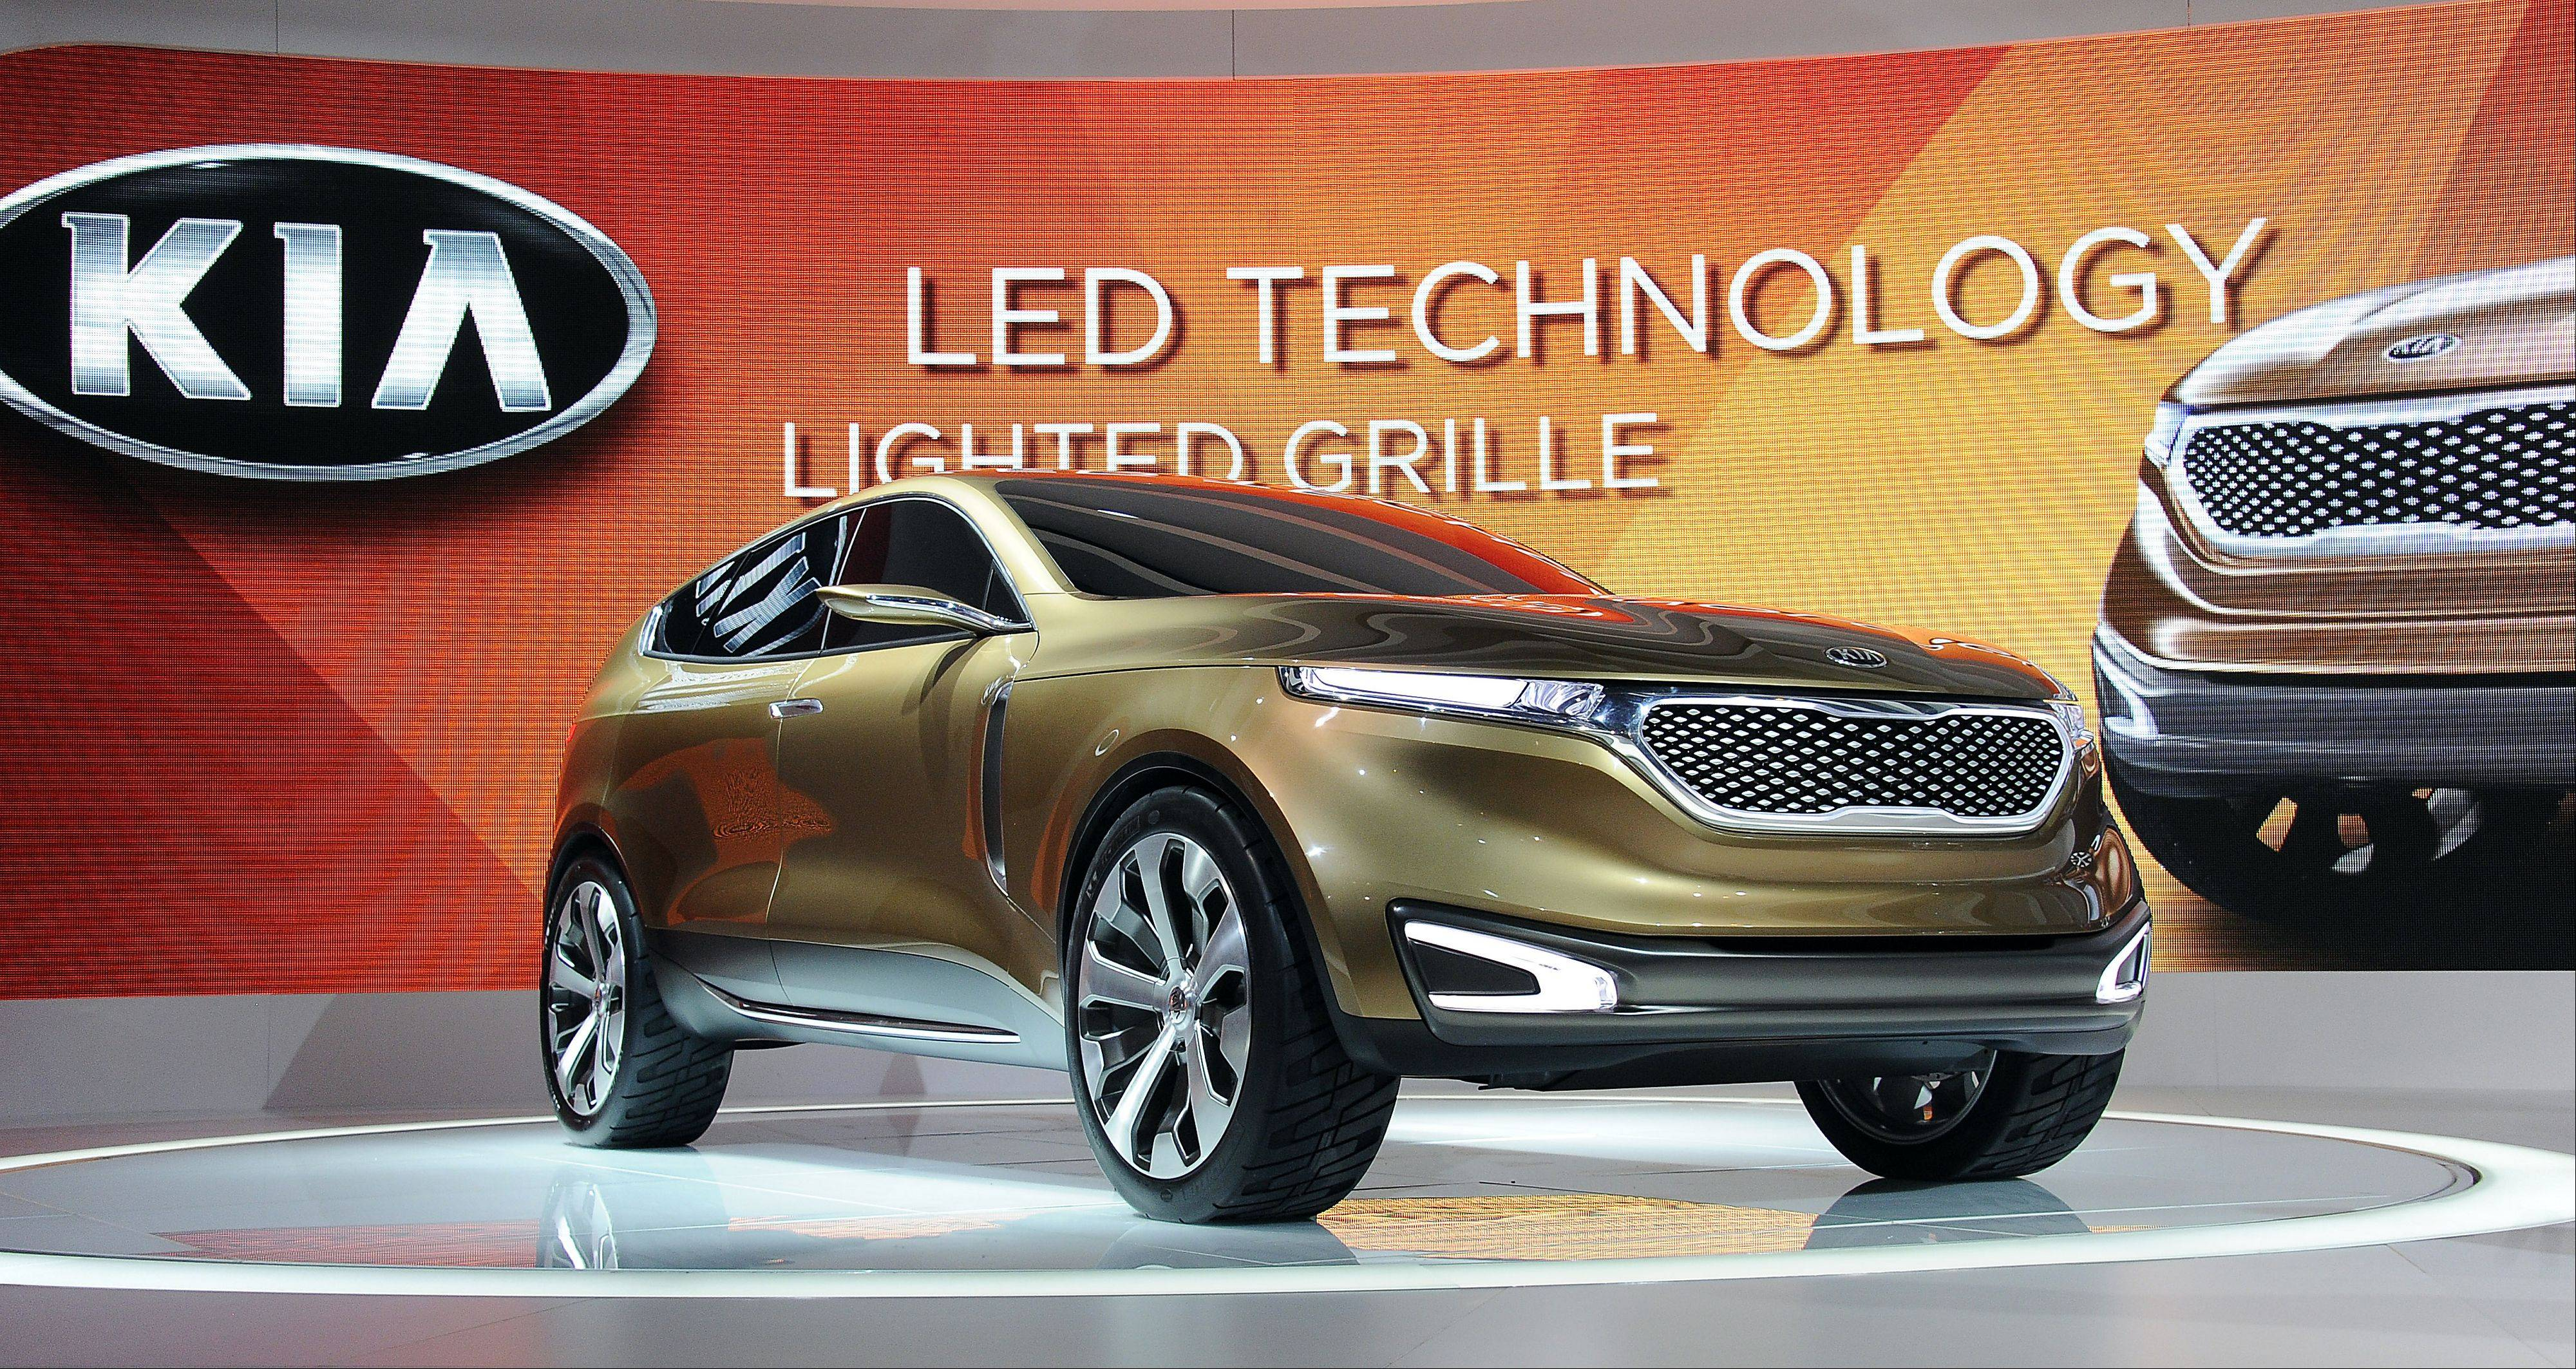 Kia shows off its latest crossover, the Cross GT, at the Chicago Auto Show.